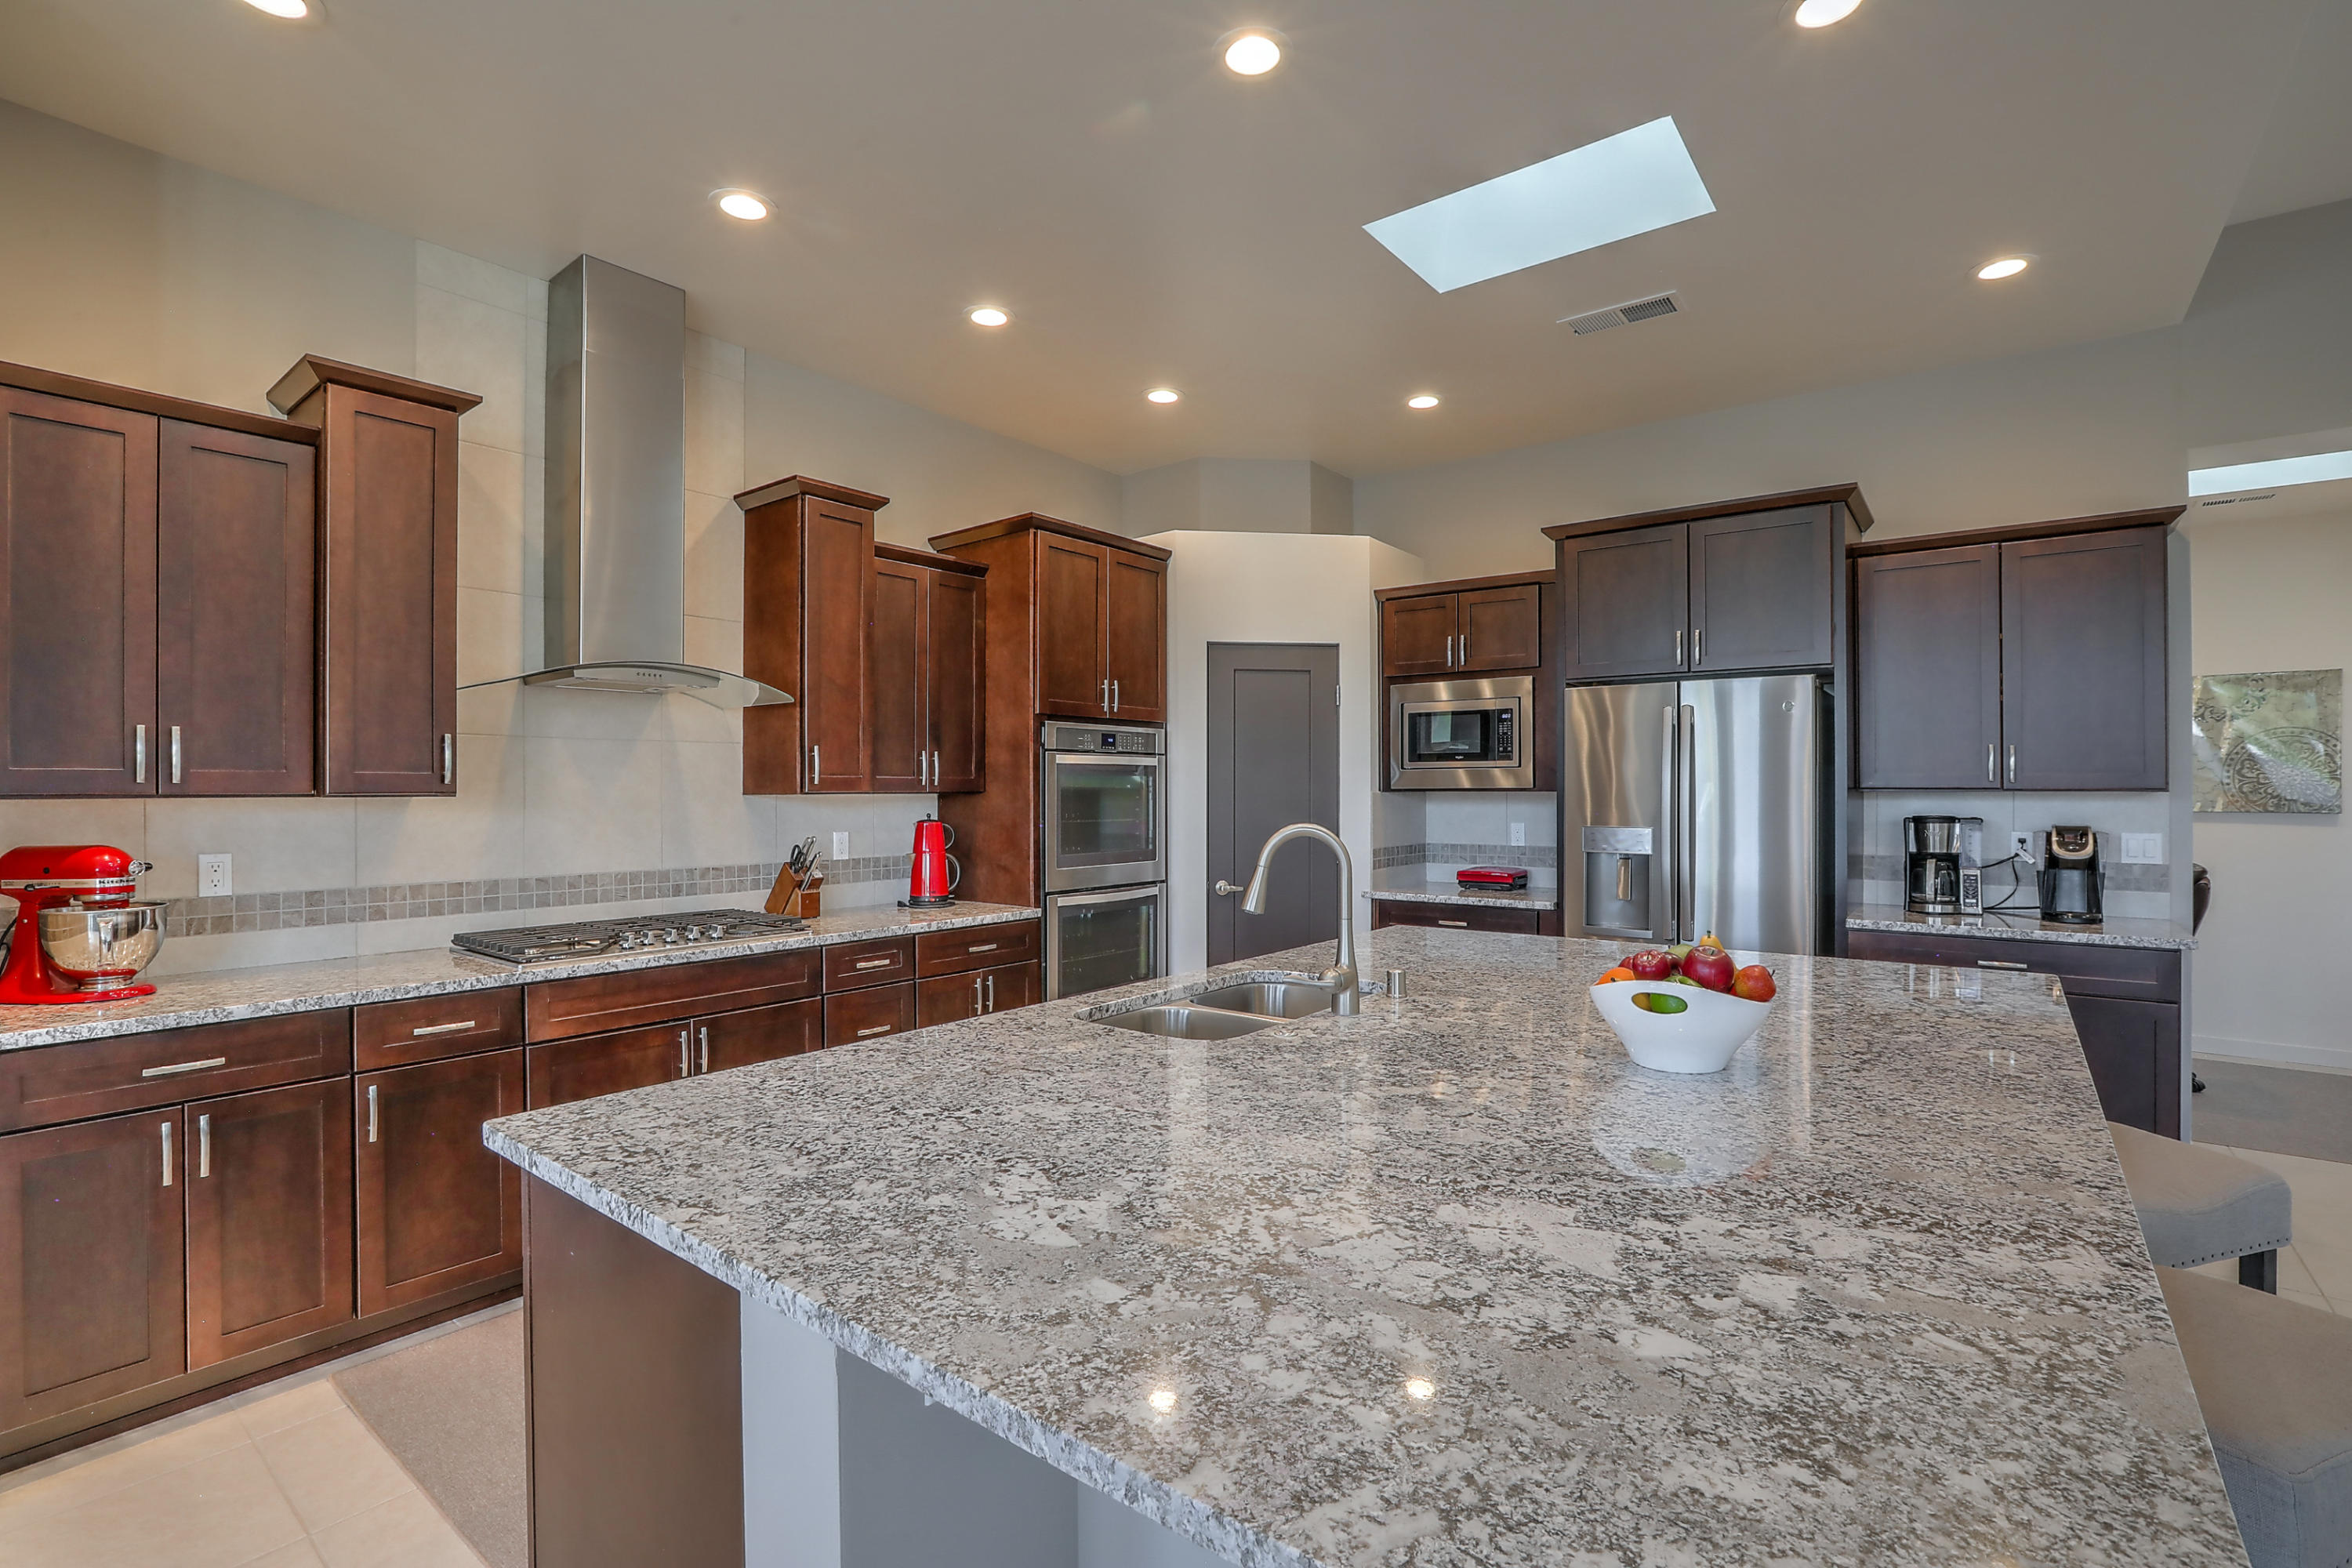 """2018 Scott Patrick contemporary style Home located in a Gated Community, North Star, Desert Ridge & La Cueva districts! Seller relocating January so there is time to get yours sold or simply plan for a fresh start in 2021! You will love the open, light filled home, raised ceilings, clean lines & Chic architectural finishes - ceiling treatments, custom lighting, granite throughout & sleek tiled backsplash. Separated owner's suite, large rooms, 2 walk-in closets, full baths w/double sinks, spacious living/kitchen a"""" great for entertaining, living/dining combo w/cozy fireplace & a perfect tucked in study w/built in desk, cabinetry & counterspace! Private, easy-care yards relax by the firepit, evergreen turf lawn & expansive covered patio, it's everything you want in your ABQ Dream Home."""